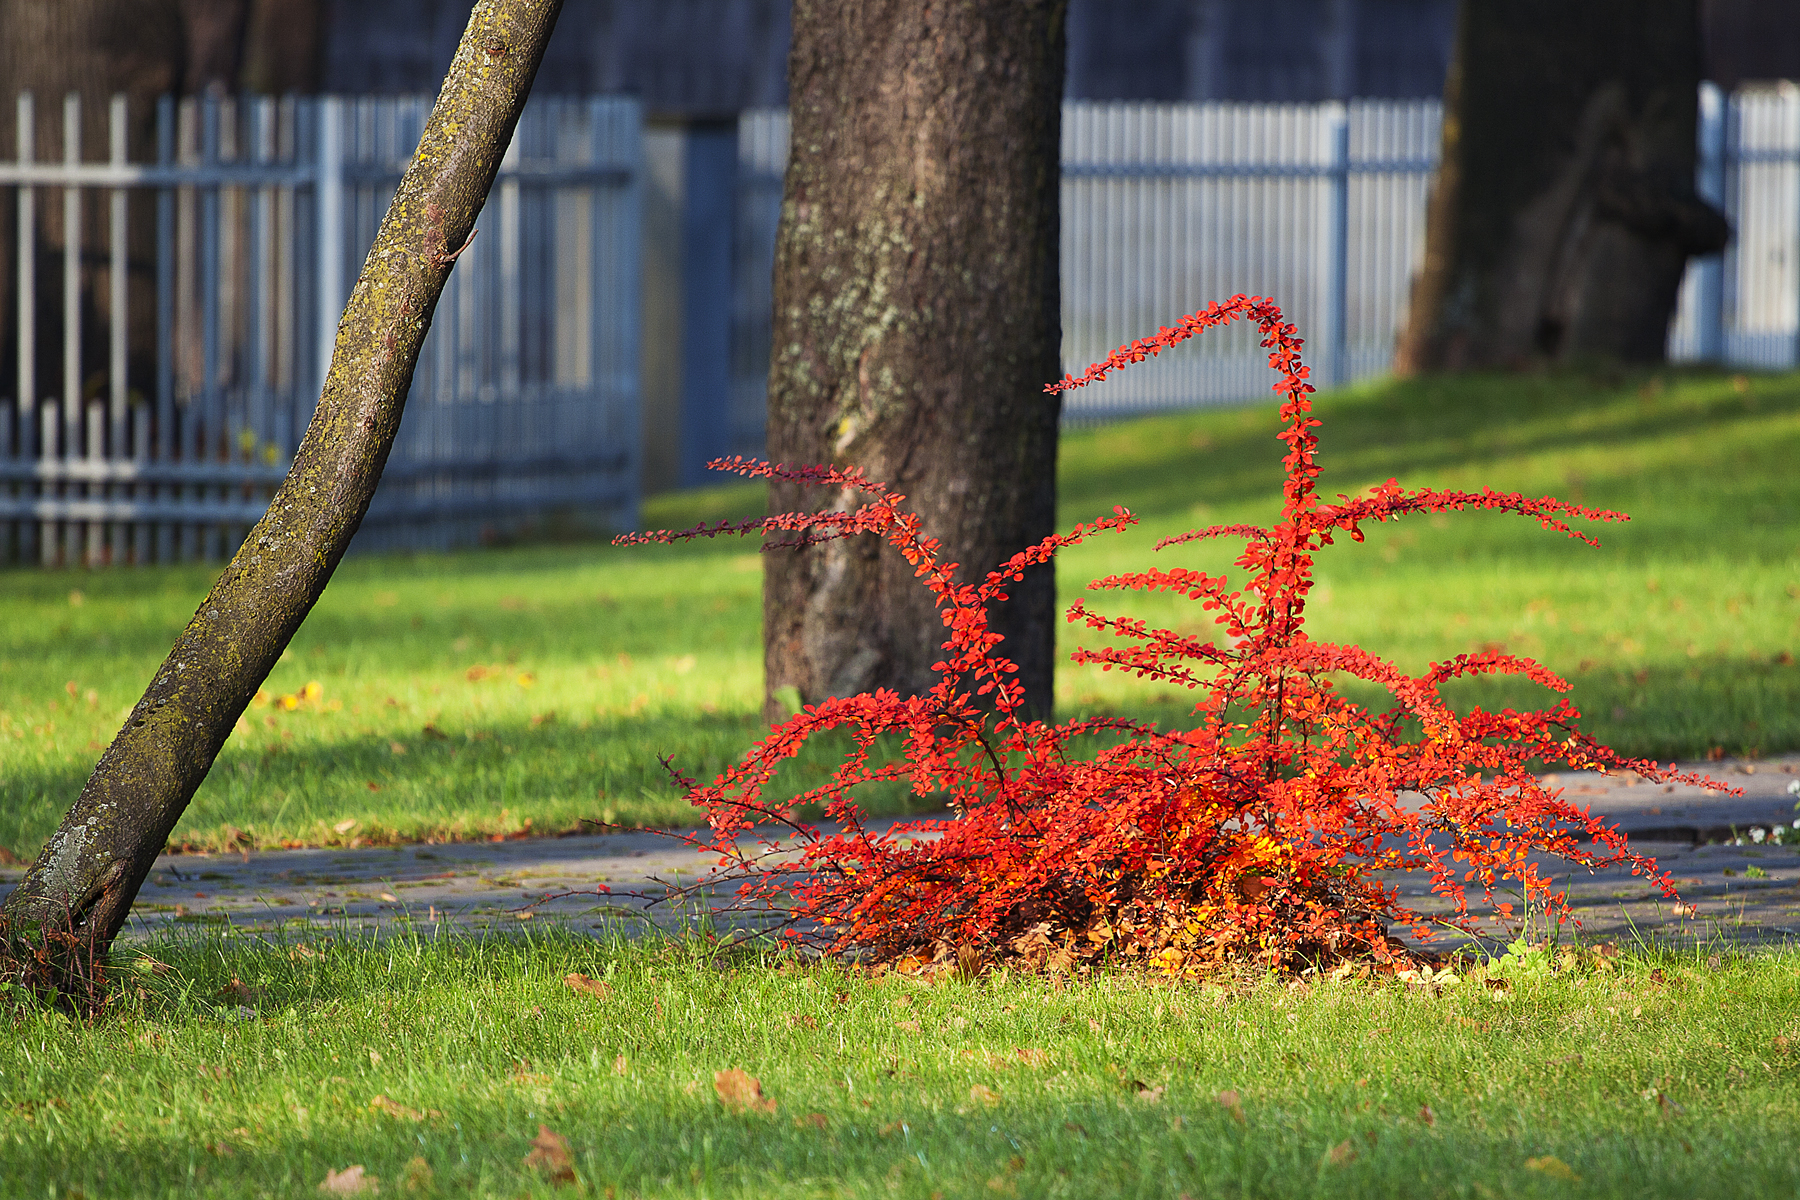 Red Bush Via @Atisgailis